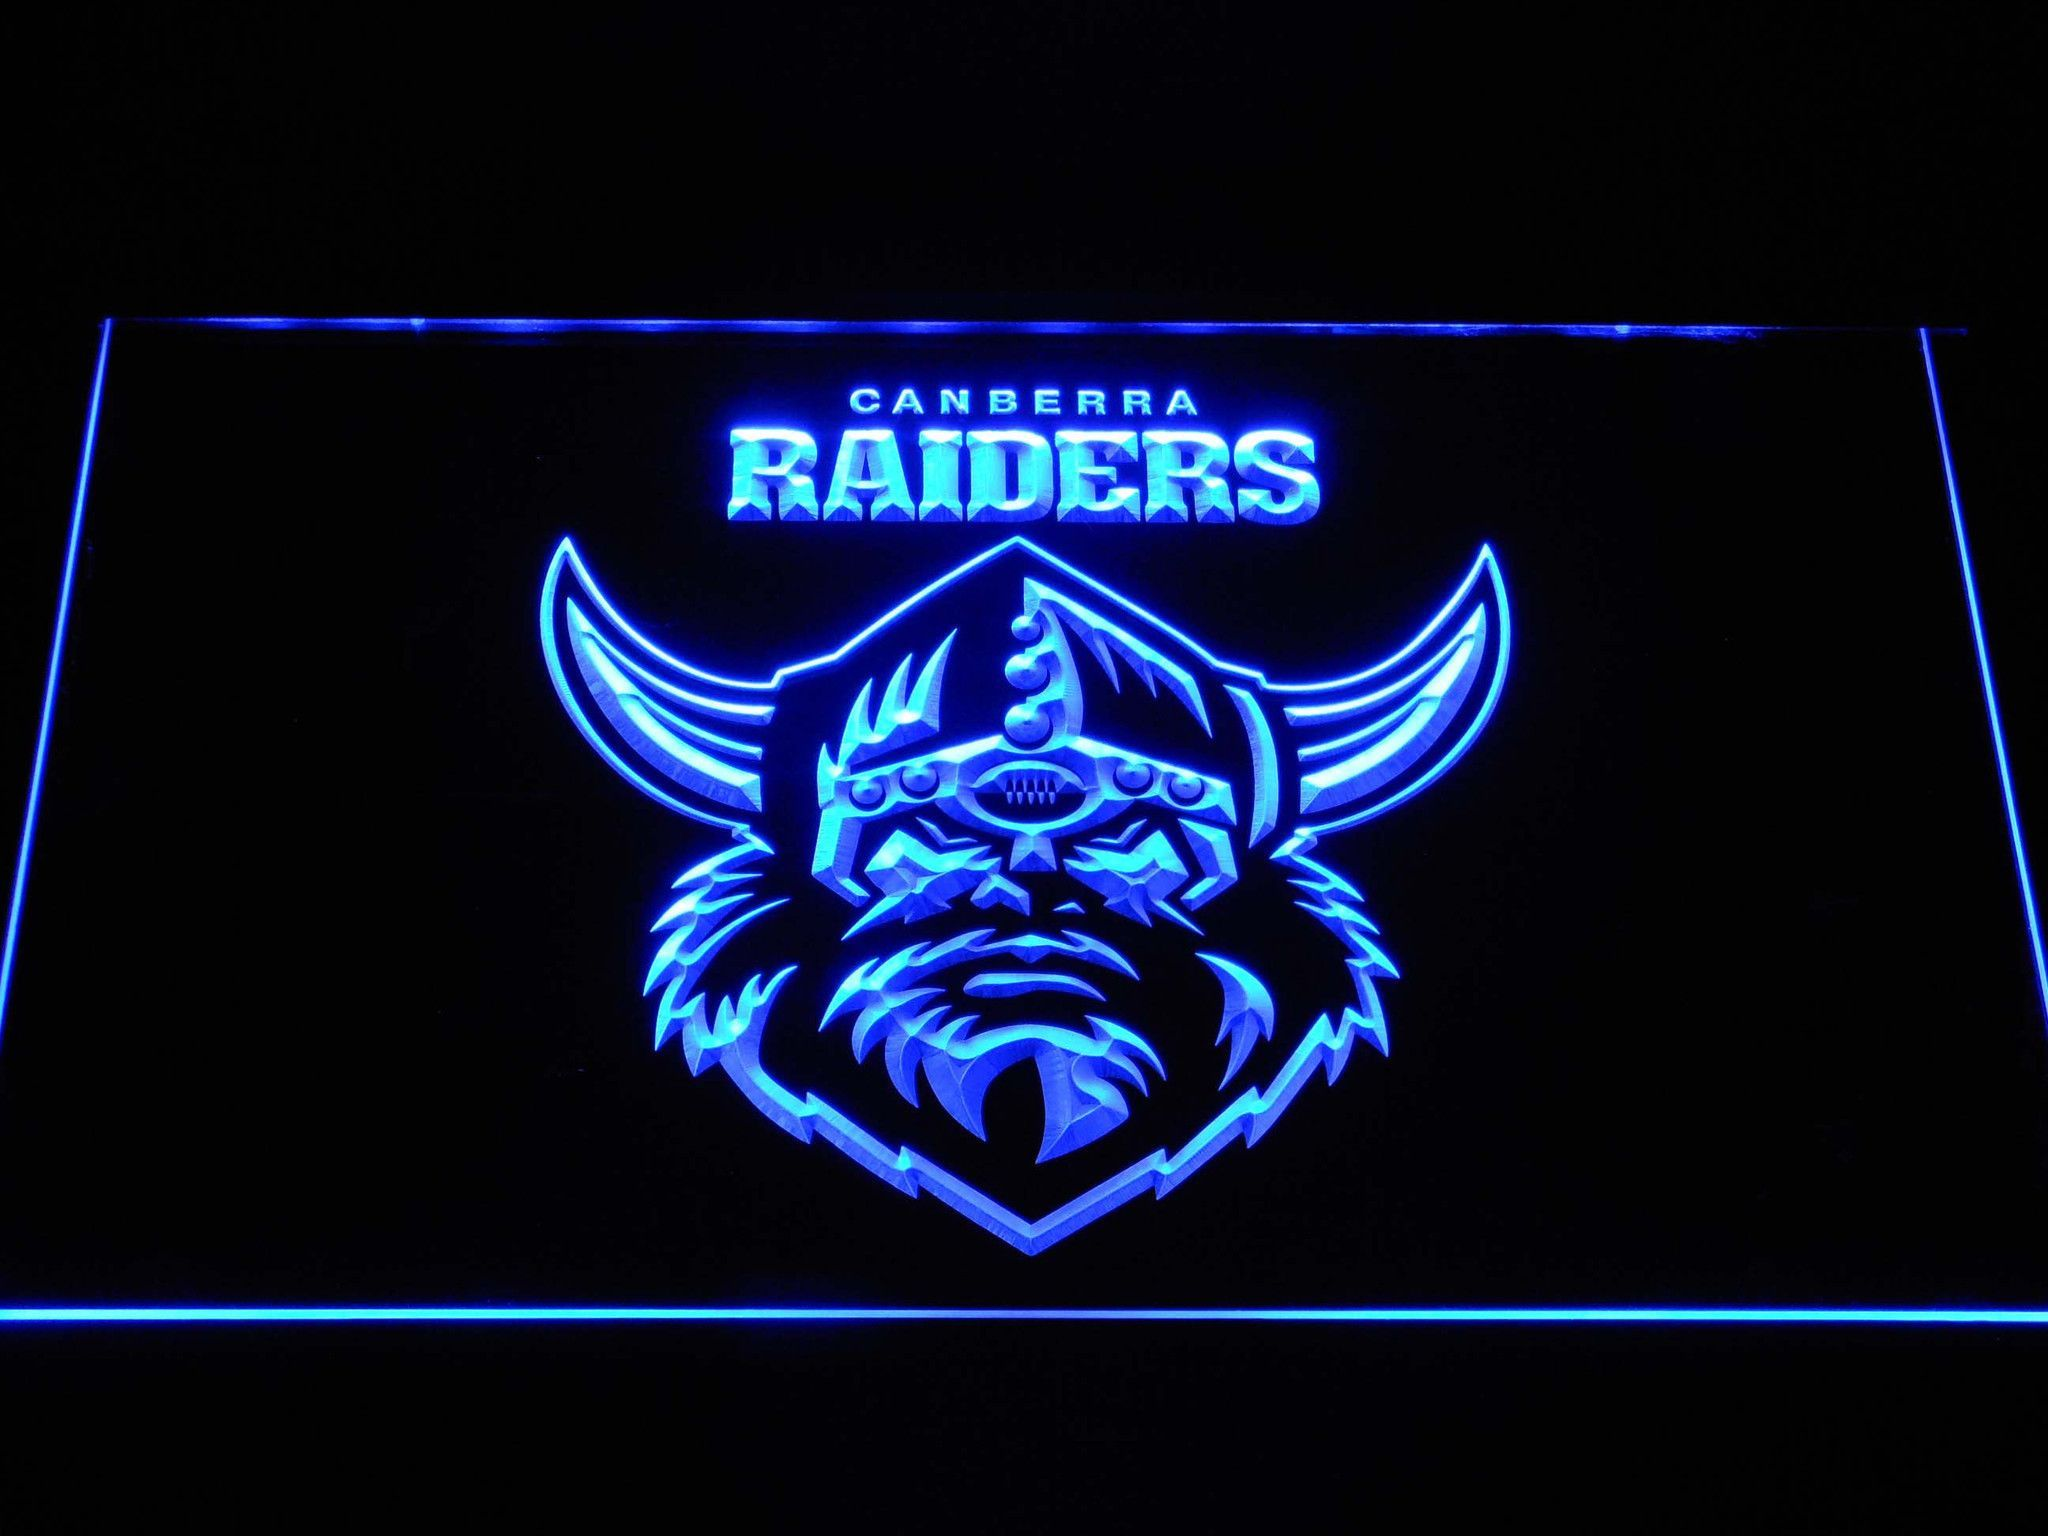 Canberra Raiders LED Neon Sign | Led neon signs, Neon